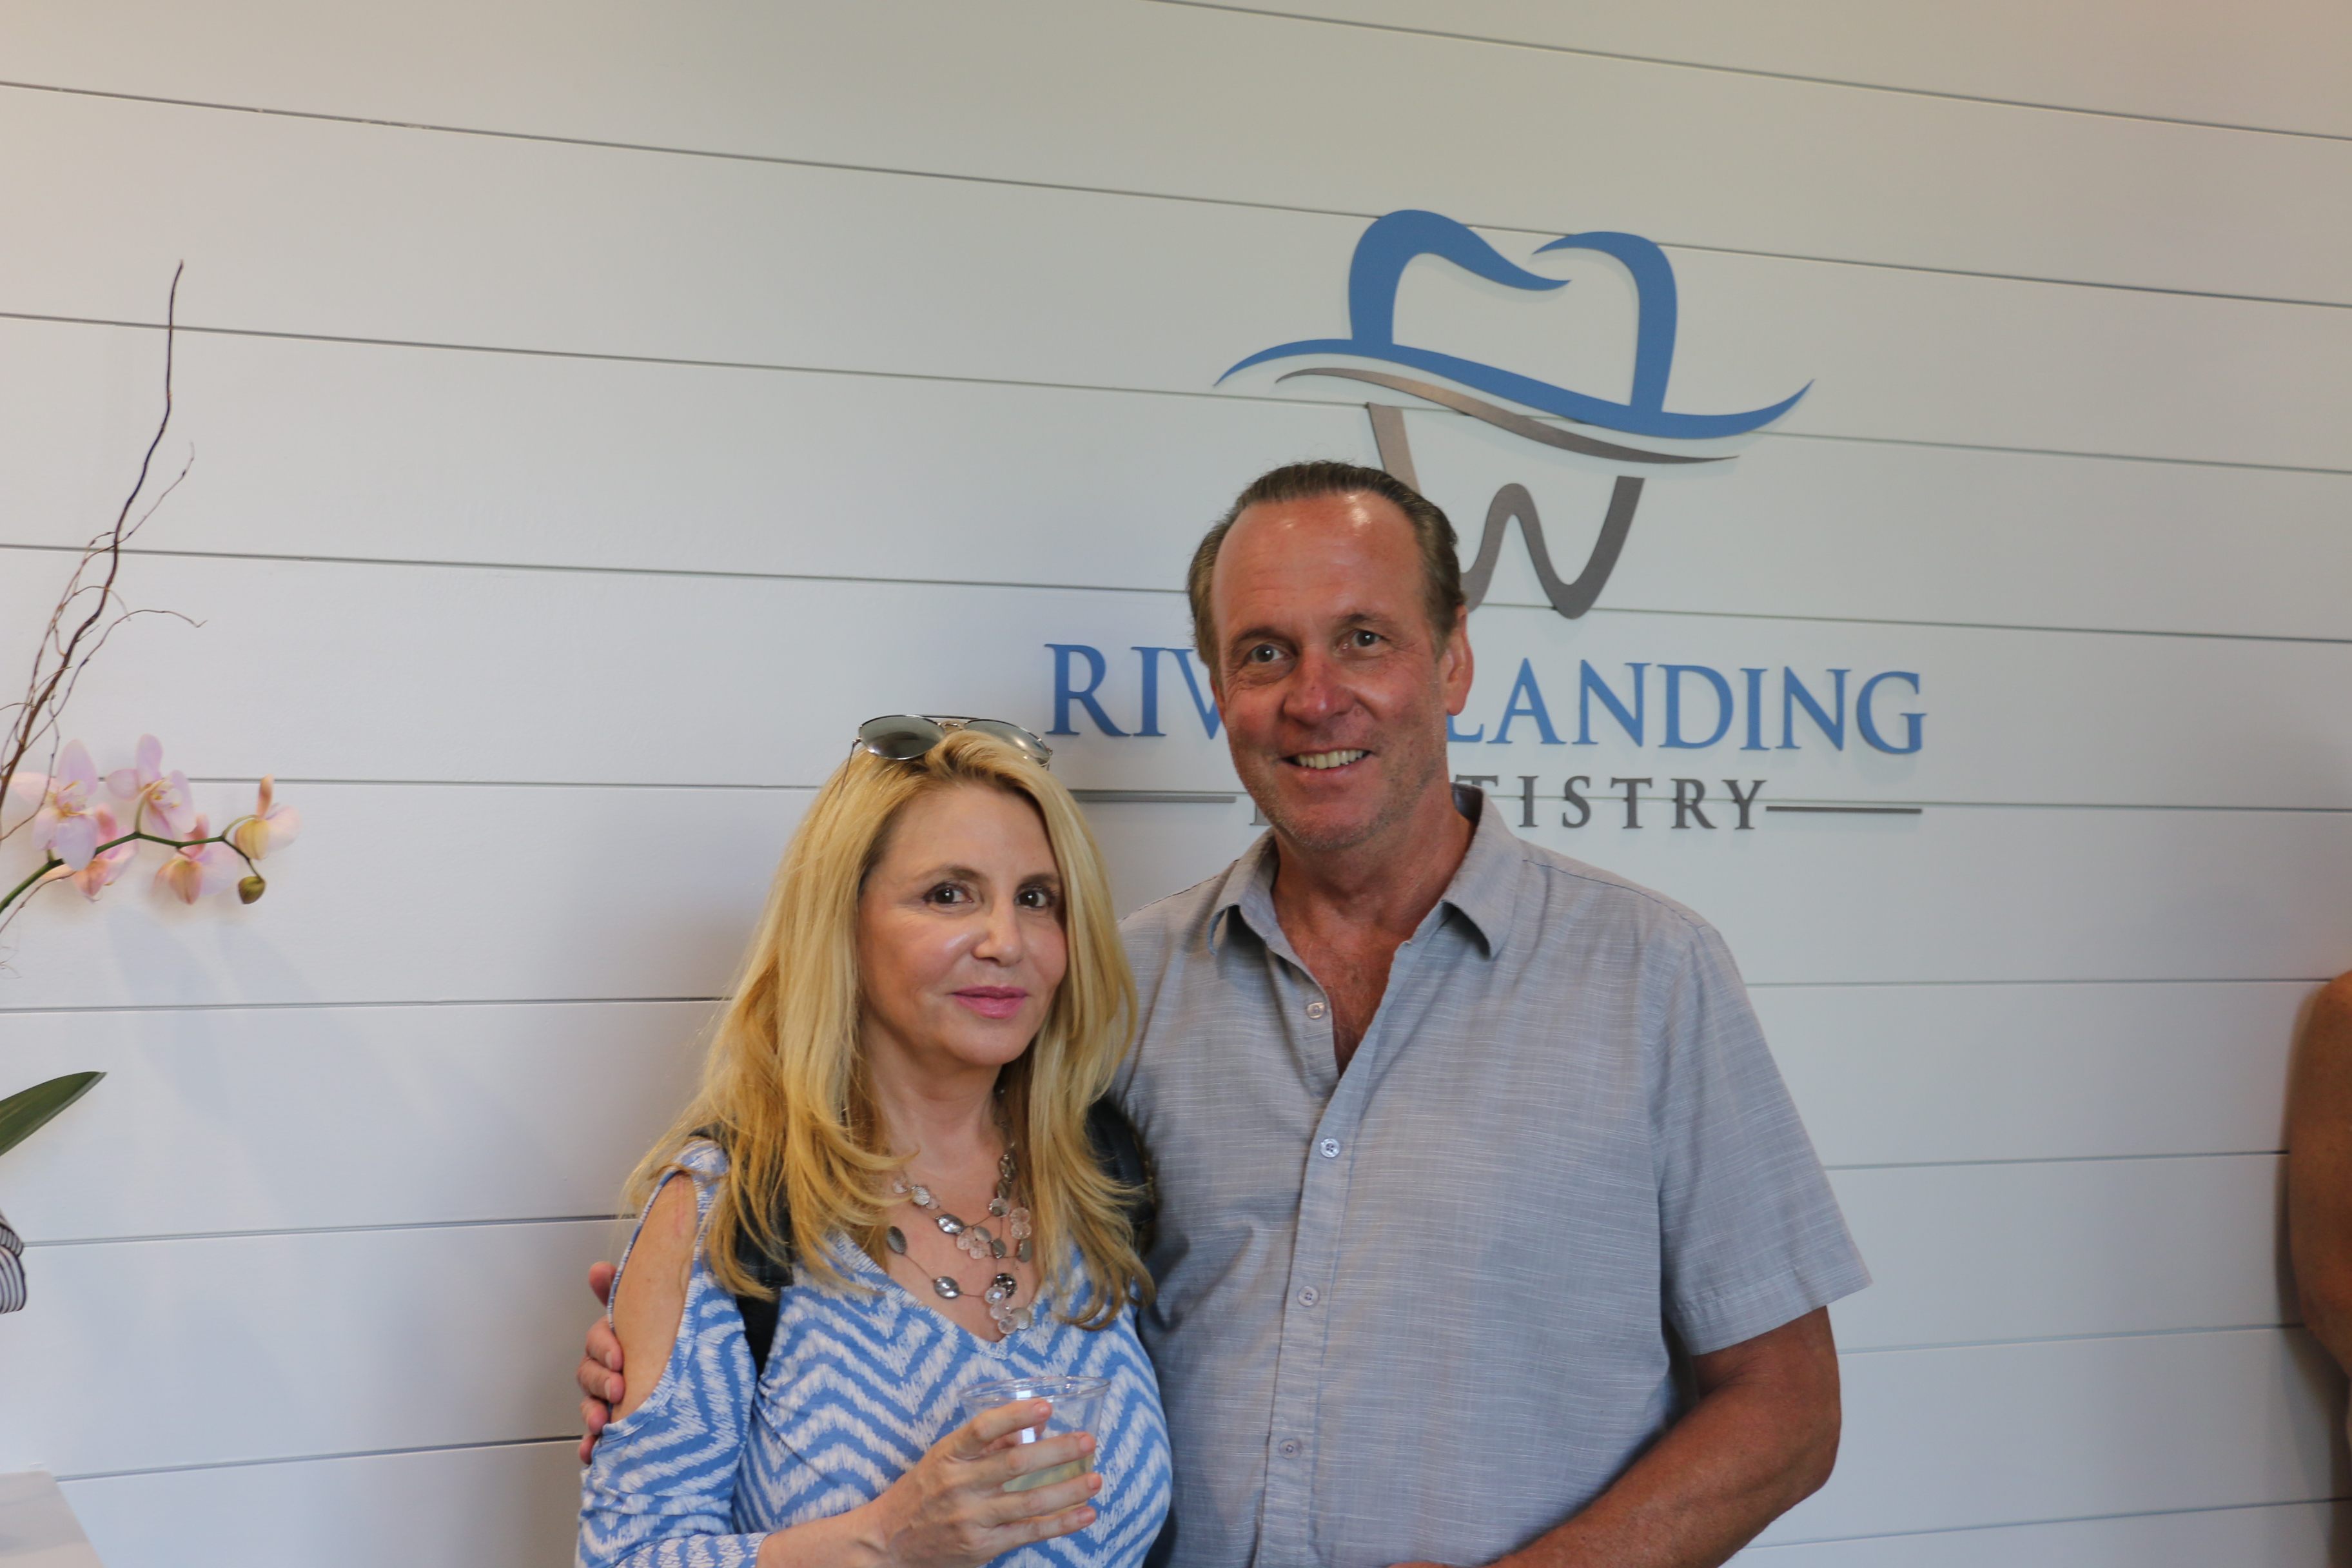 Marie and Stephen Tygh enjoyed the tour of the new office.